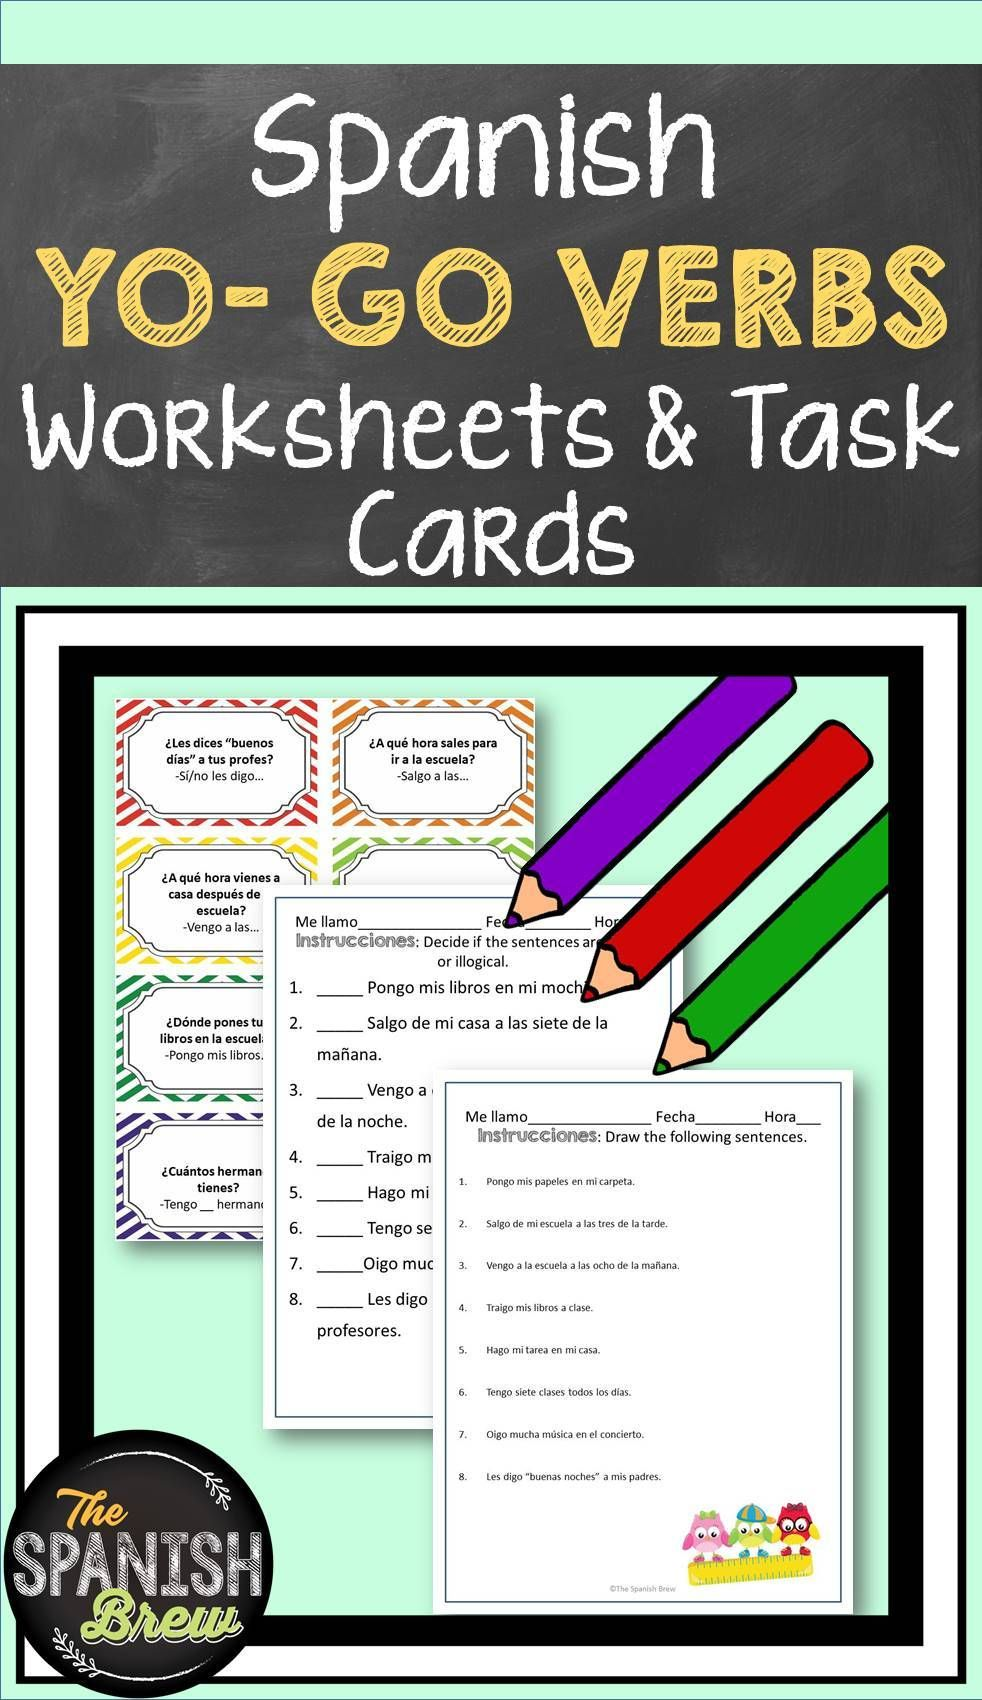 Your Spanish Students Will Love These Speaking Task Cards And Worksheets For Practicing Yo Go Present Tense Verbs Spanish Students Elementary Spanish Teaching [ 1700 x 982 Pixel ]